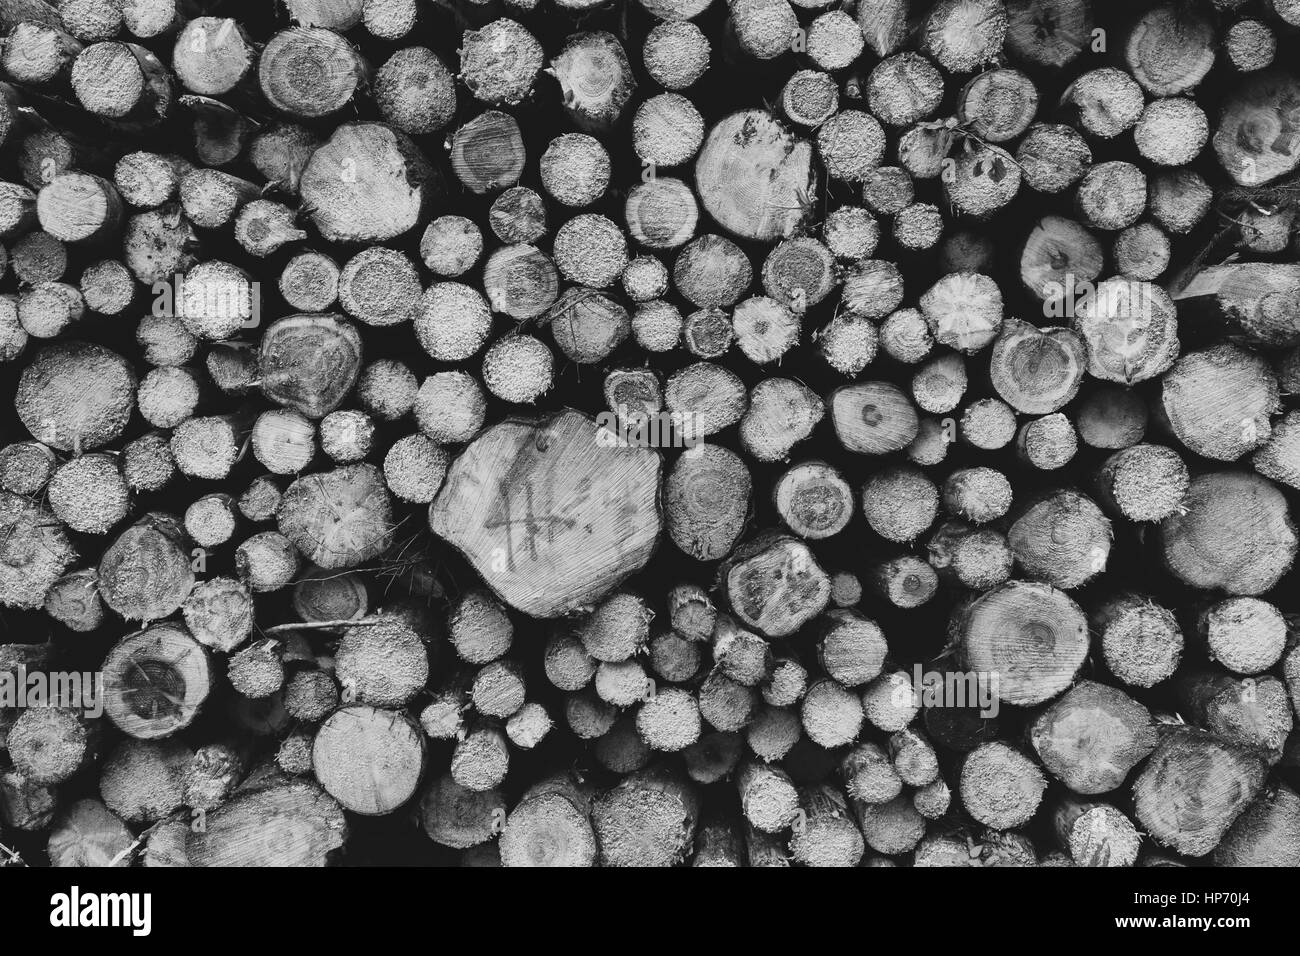 Log pile in black and white - Stock Image